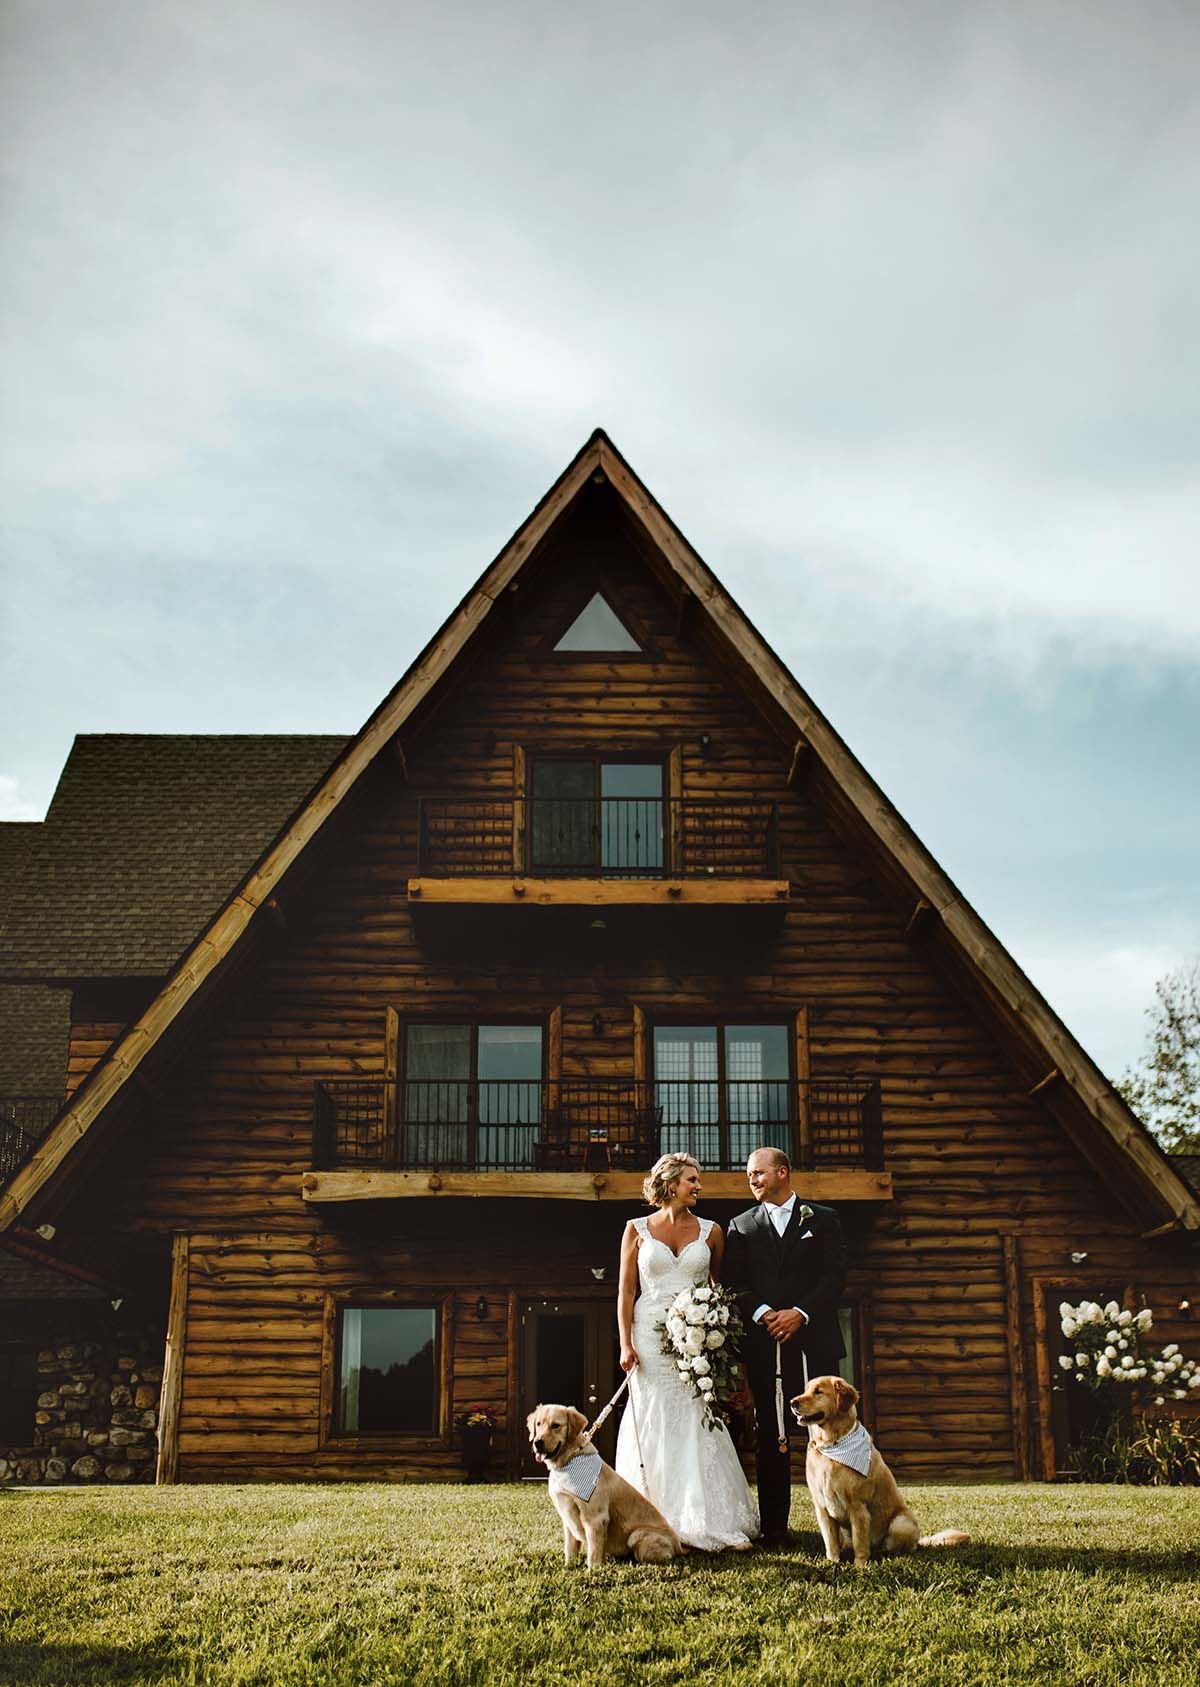 Experience Rustic Romance At The Regions Best Country Chic Venues The Connecticut Bride Connecticutmag Com